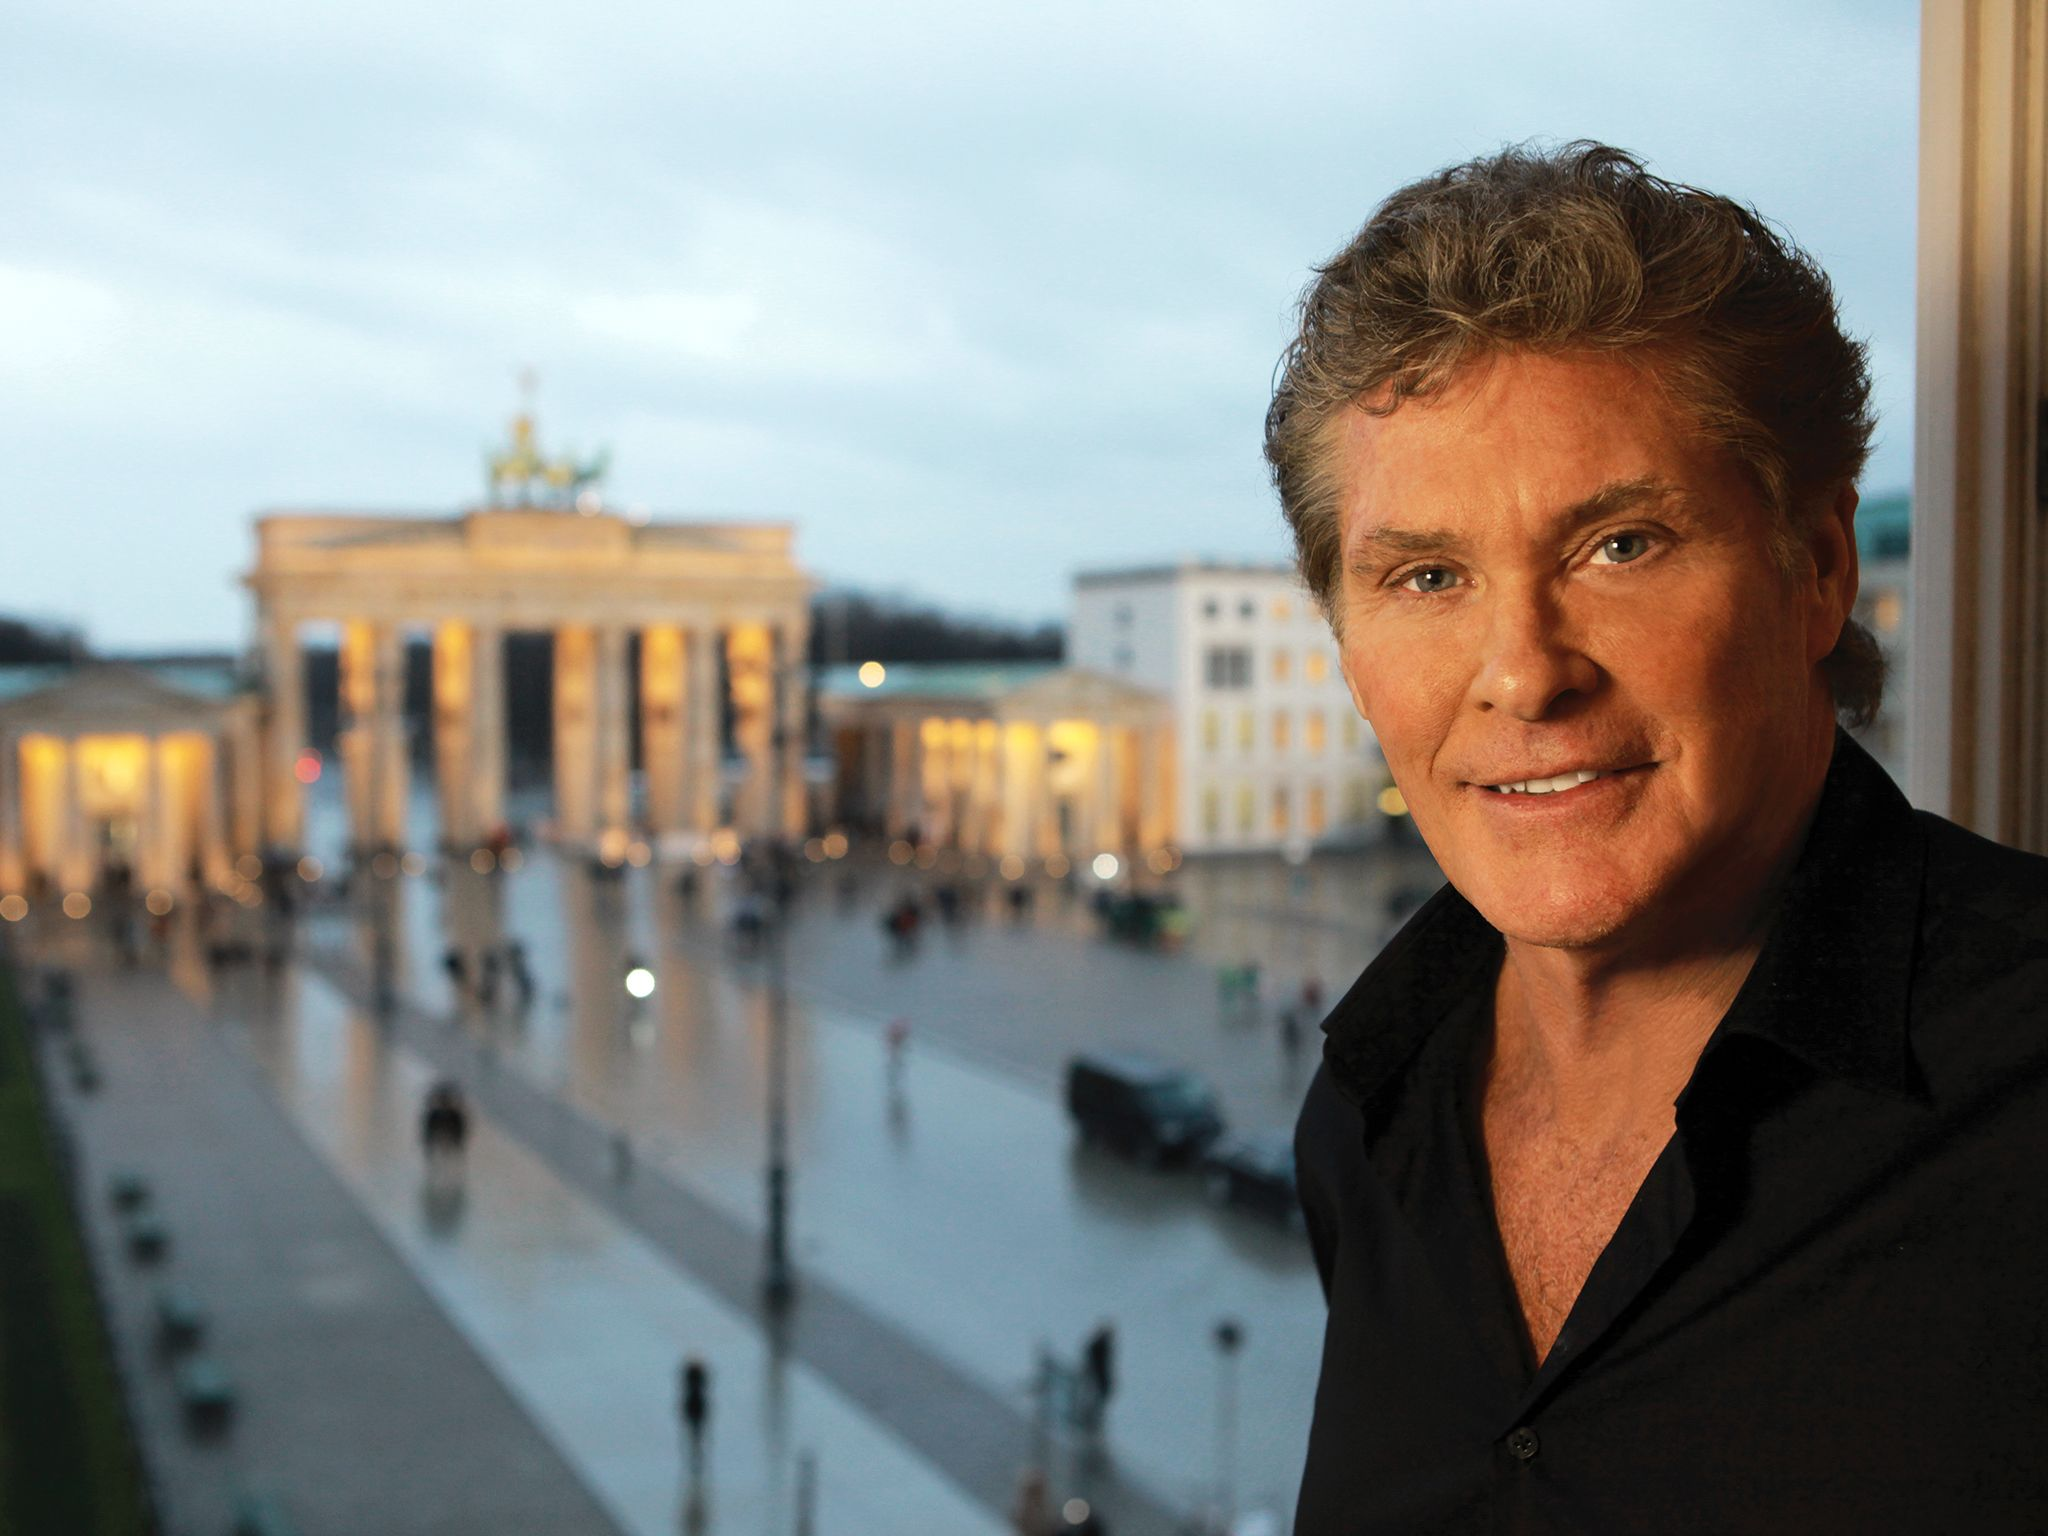 Berlin, Germany: David Hasselhoff in his hotel room overlooking the Brandenburg Gate. This image ... [Photo of the day - Novembro 2014]